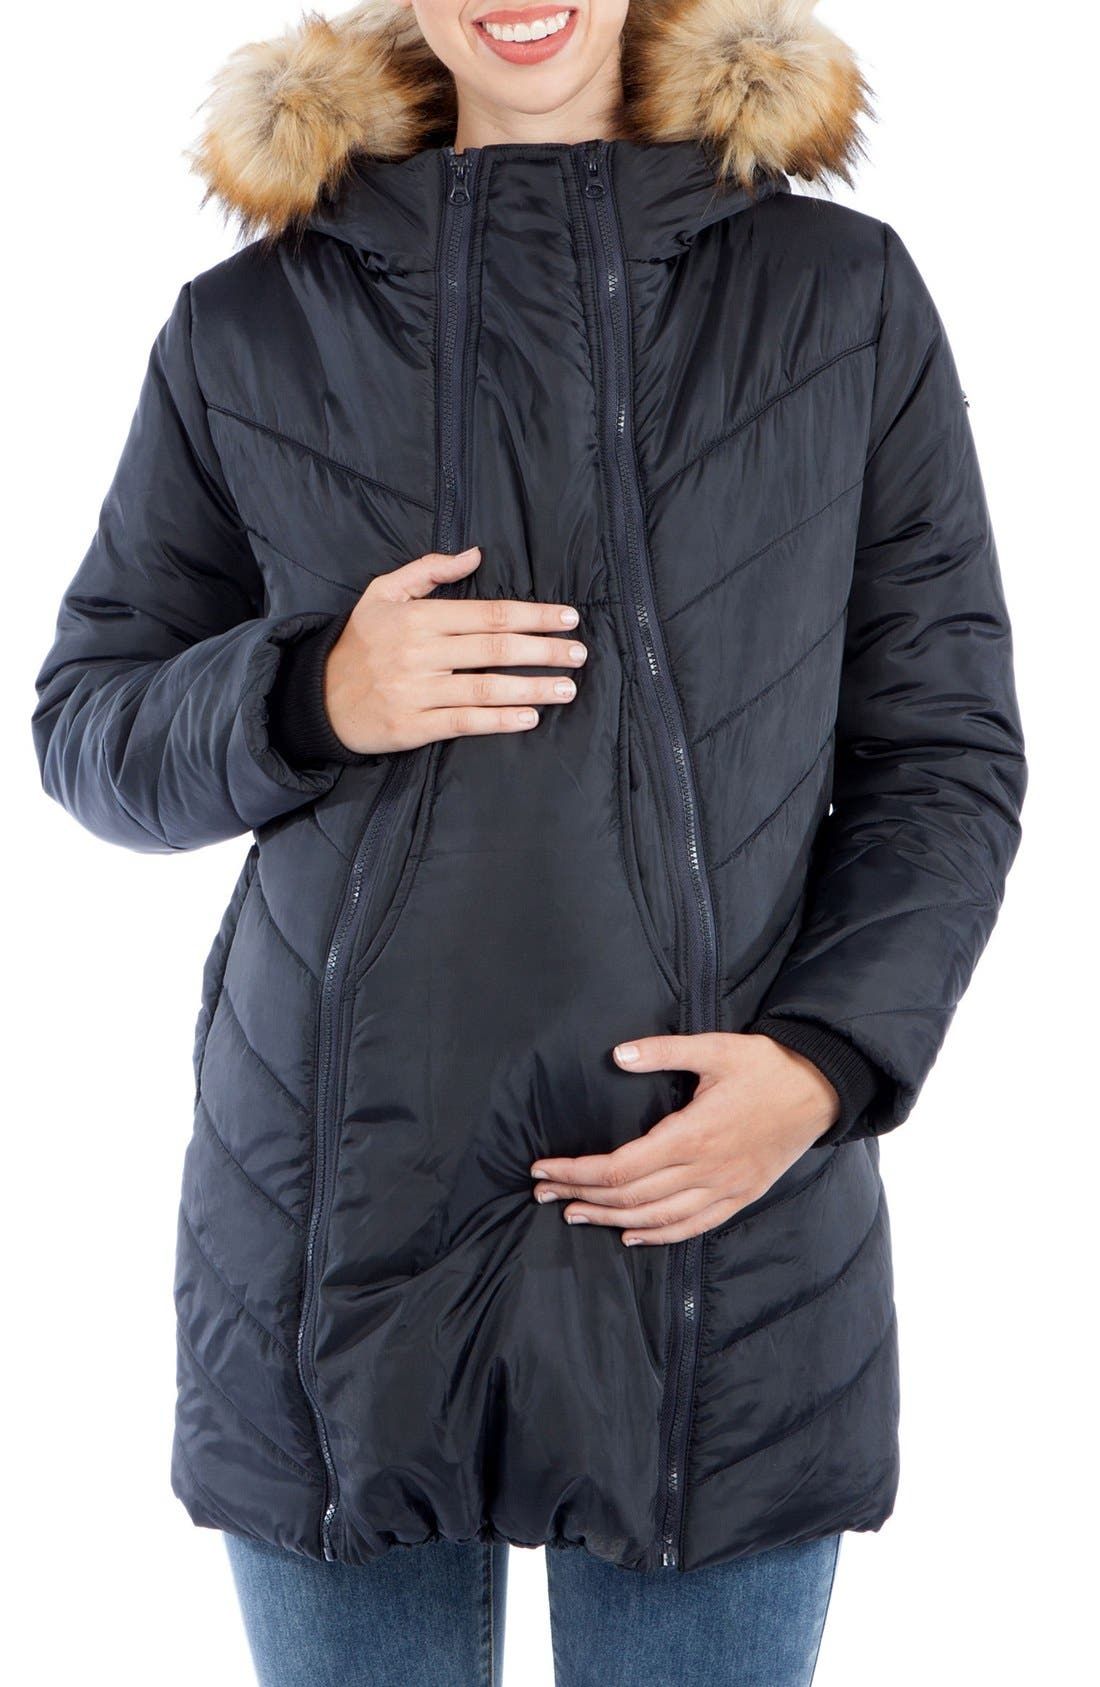 Faux Fur Trim Convertible Puffer 3-in-1 Maternity Jacket,                             Alternate thumbnail 10, color,                             BLACK